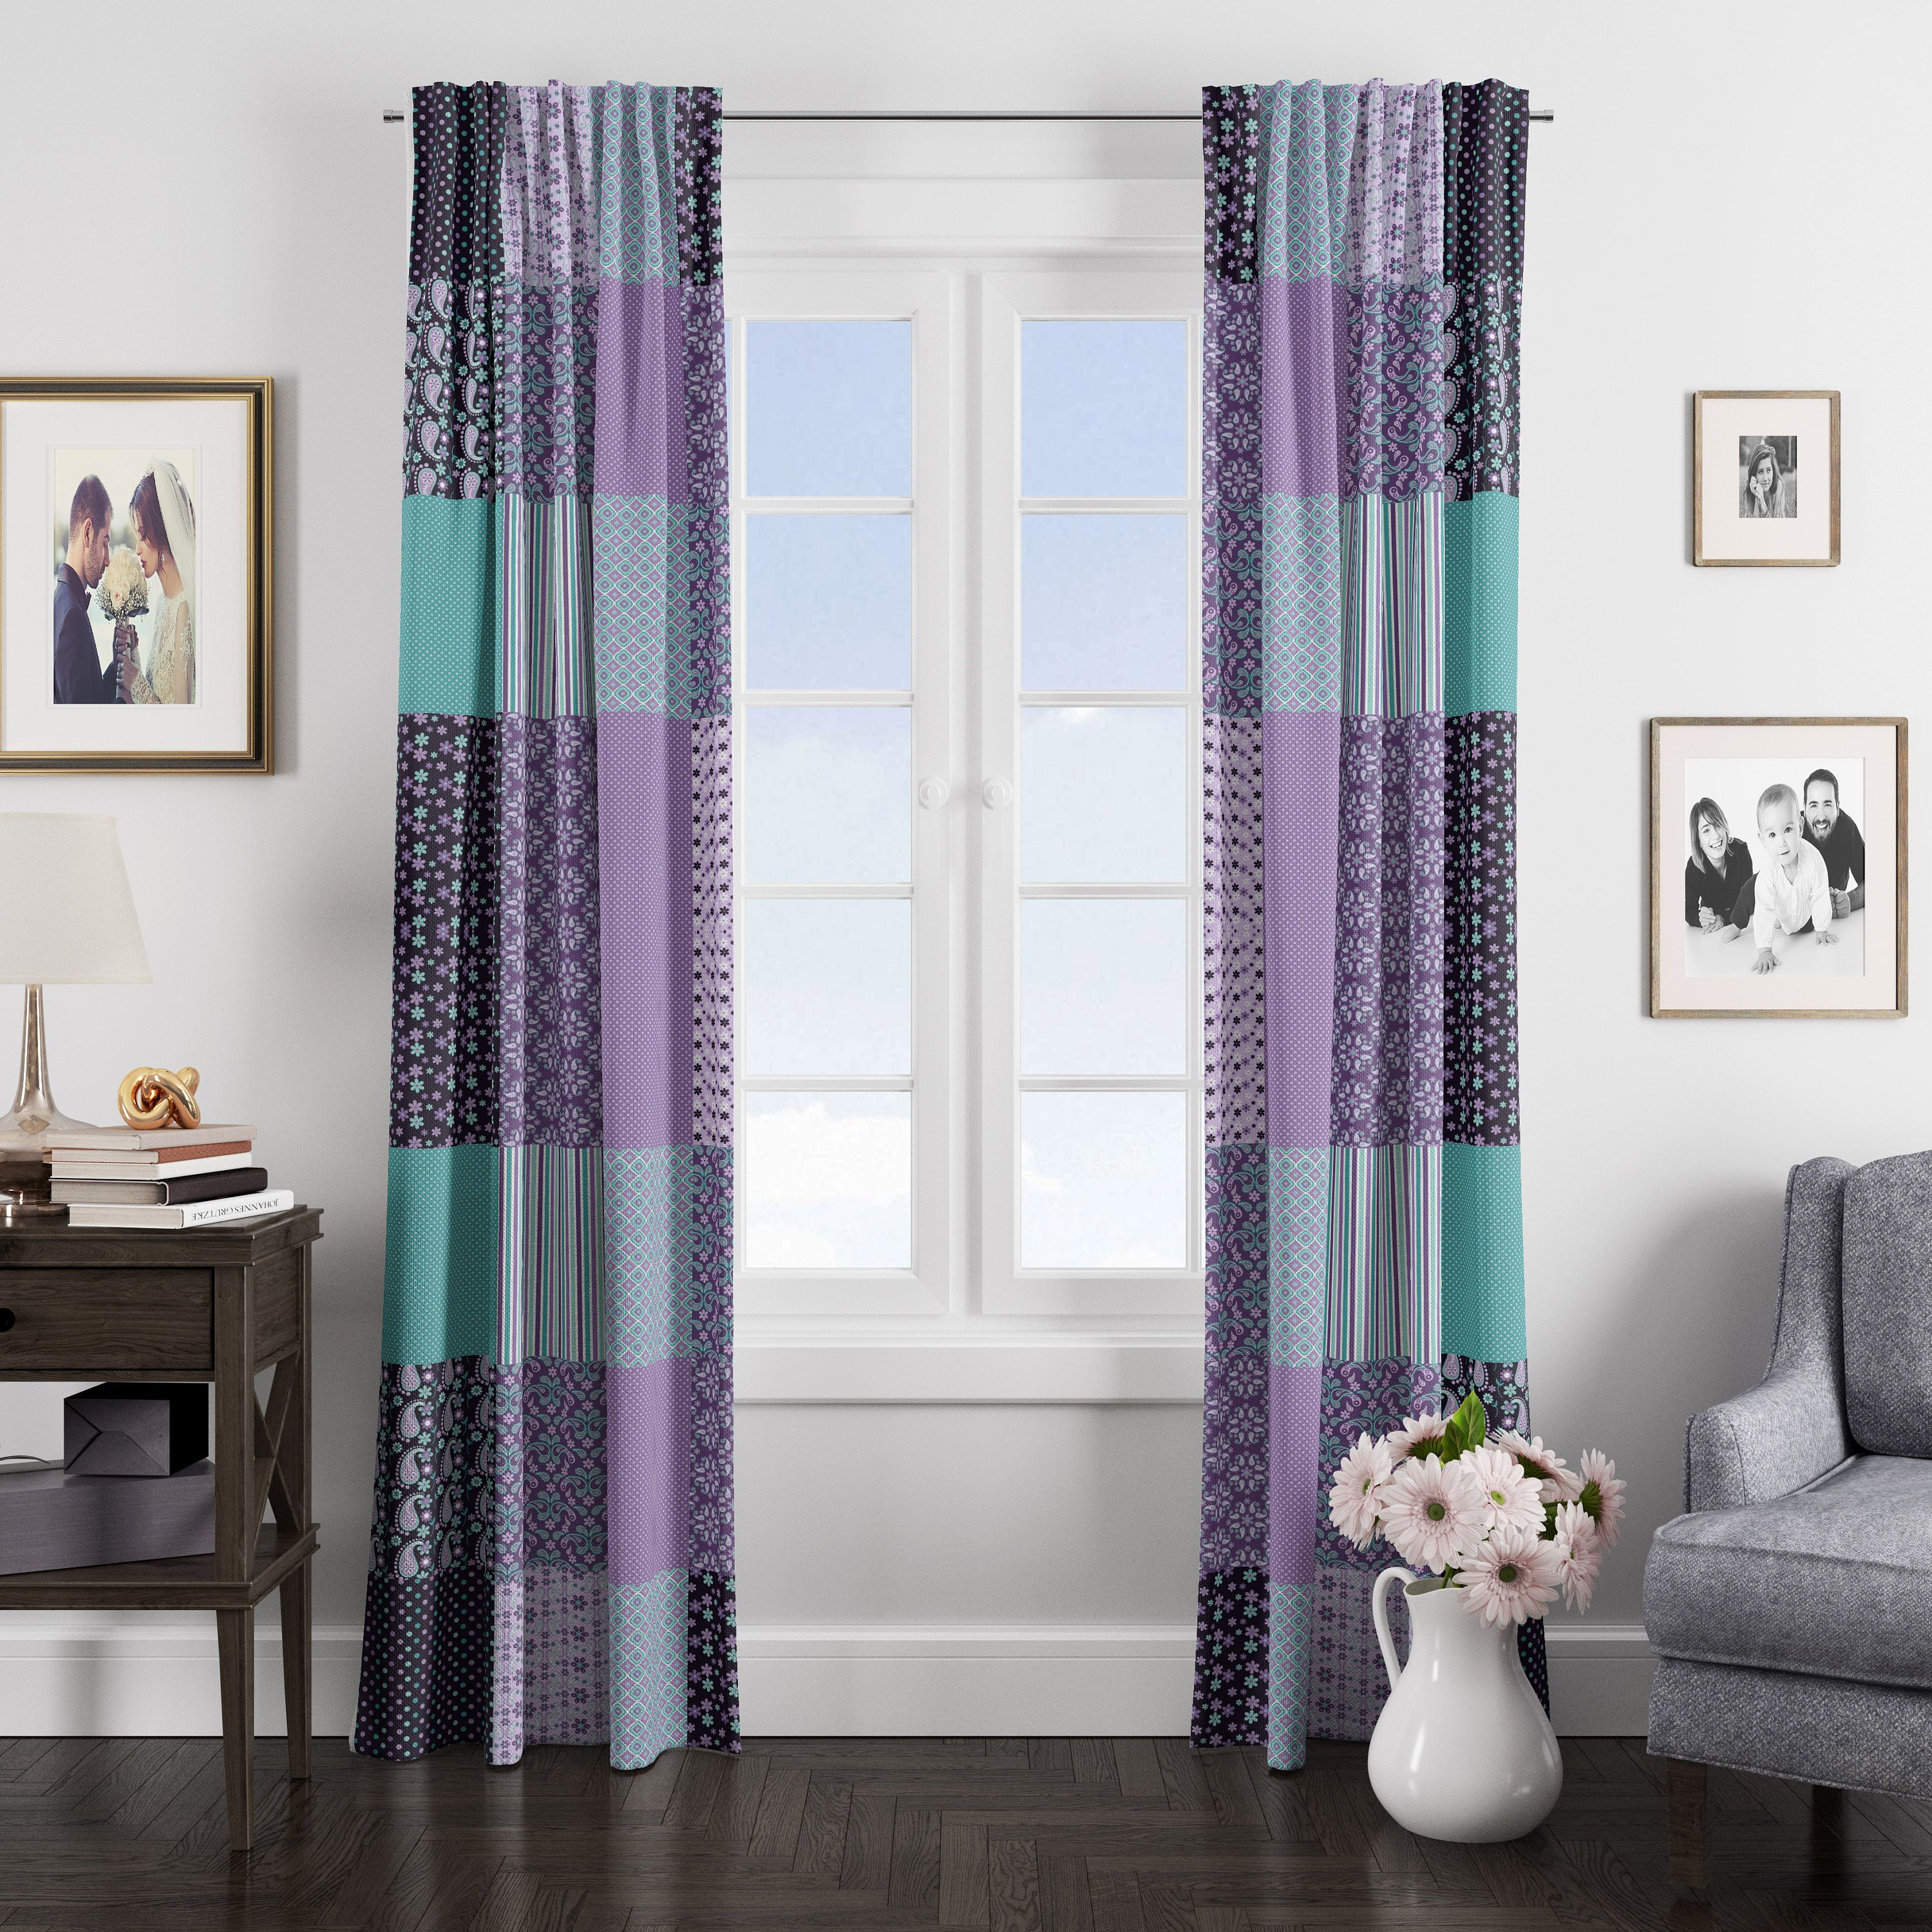 Faux Patchwork Boho Window Curtains In 2020 White Paneling